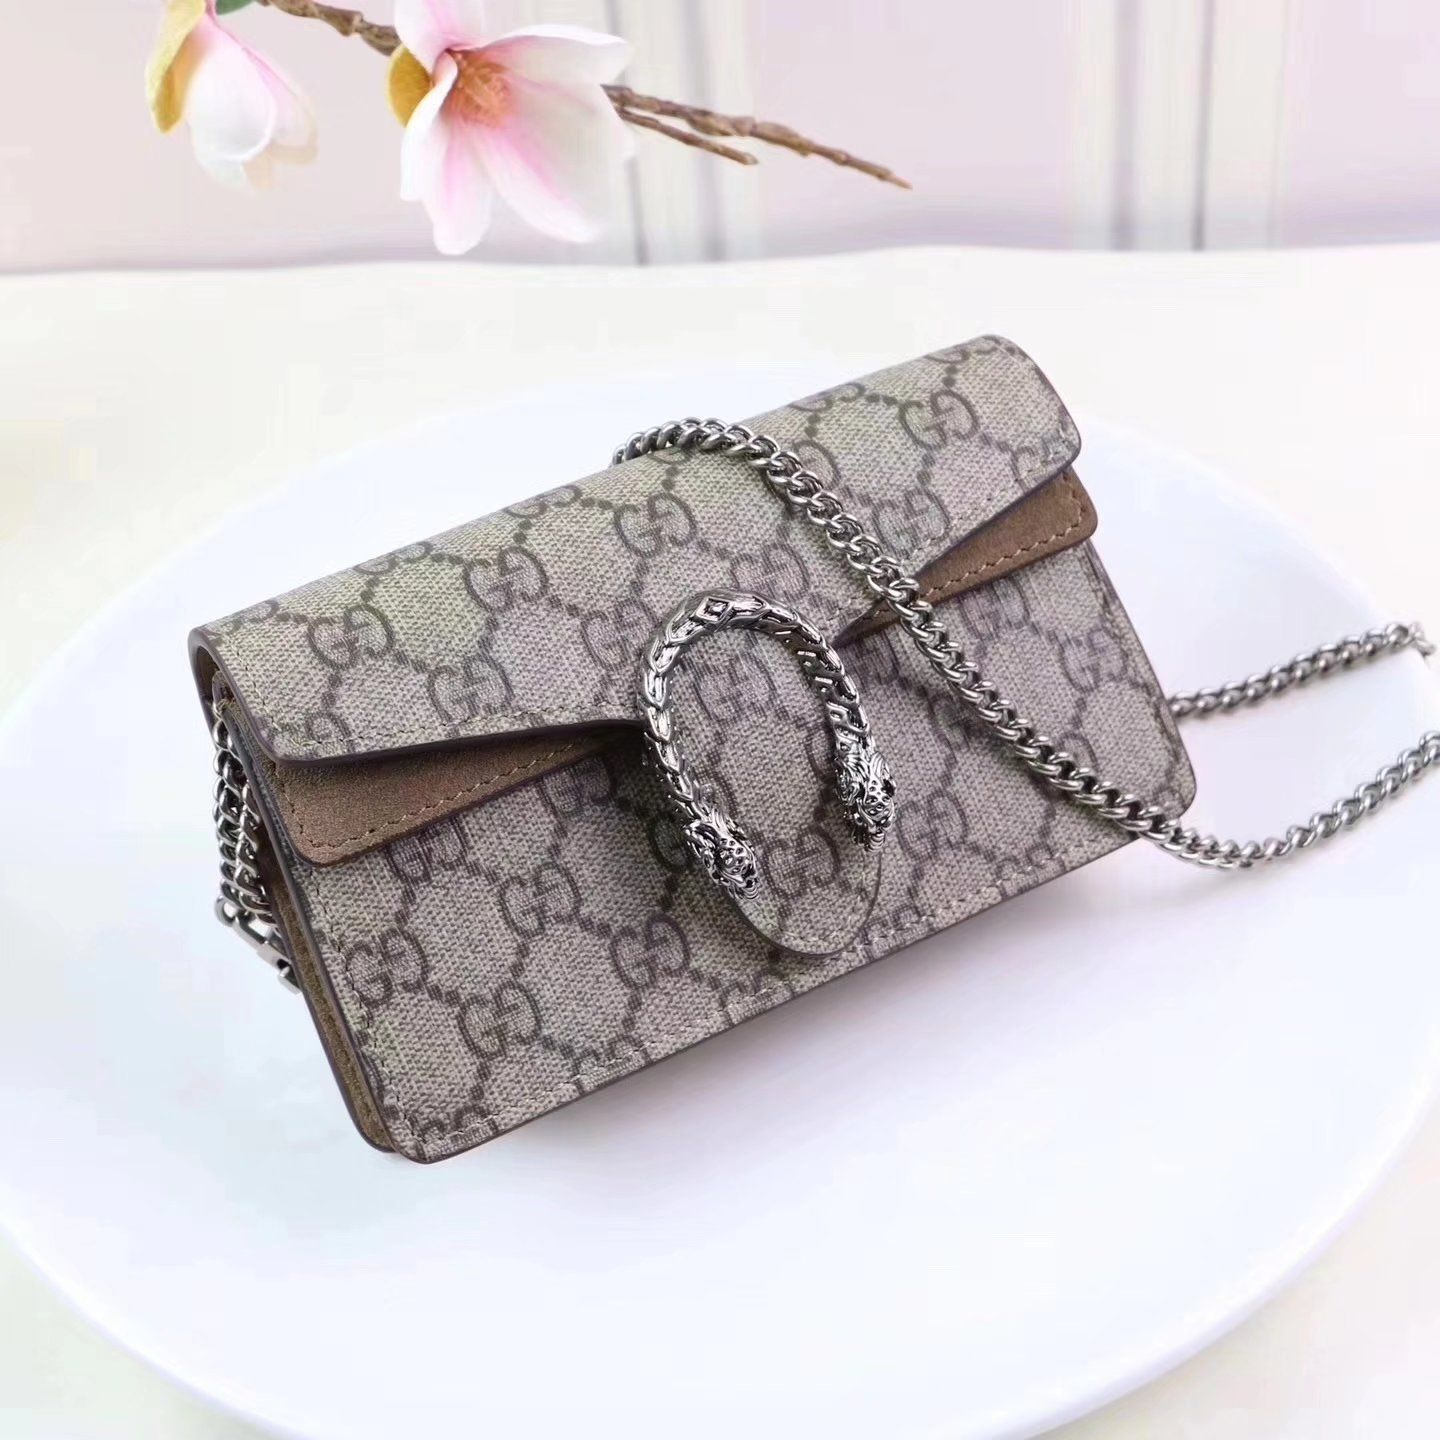 895a9a1296 Replica GUCCI Dionysus GG Supreme super mini bag Women ID:34292 $94  #replicahandbags